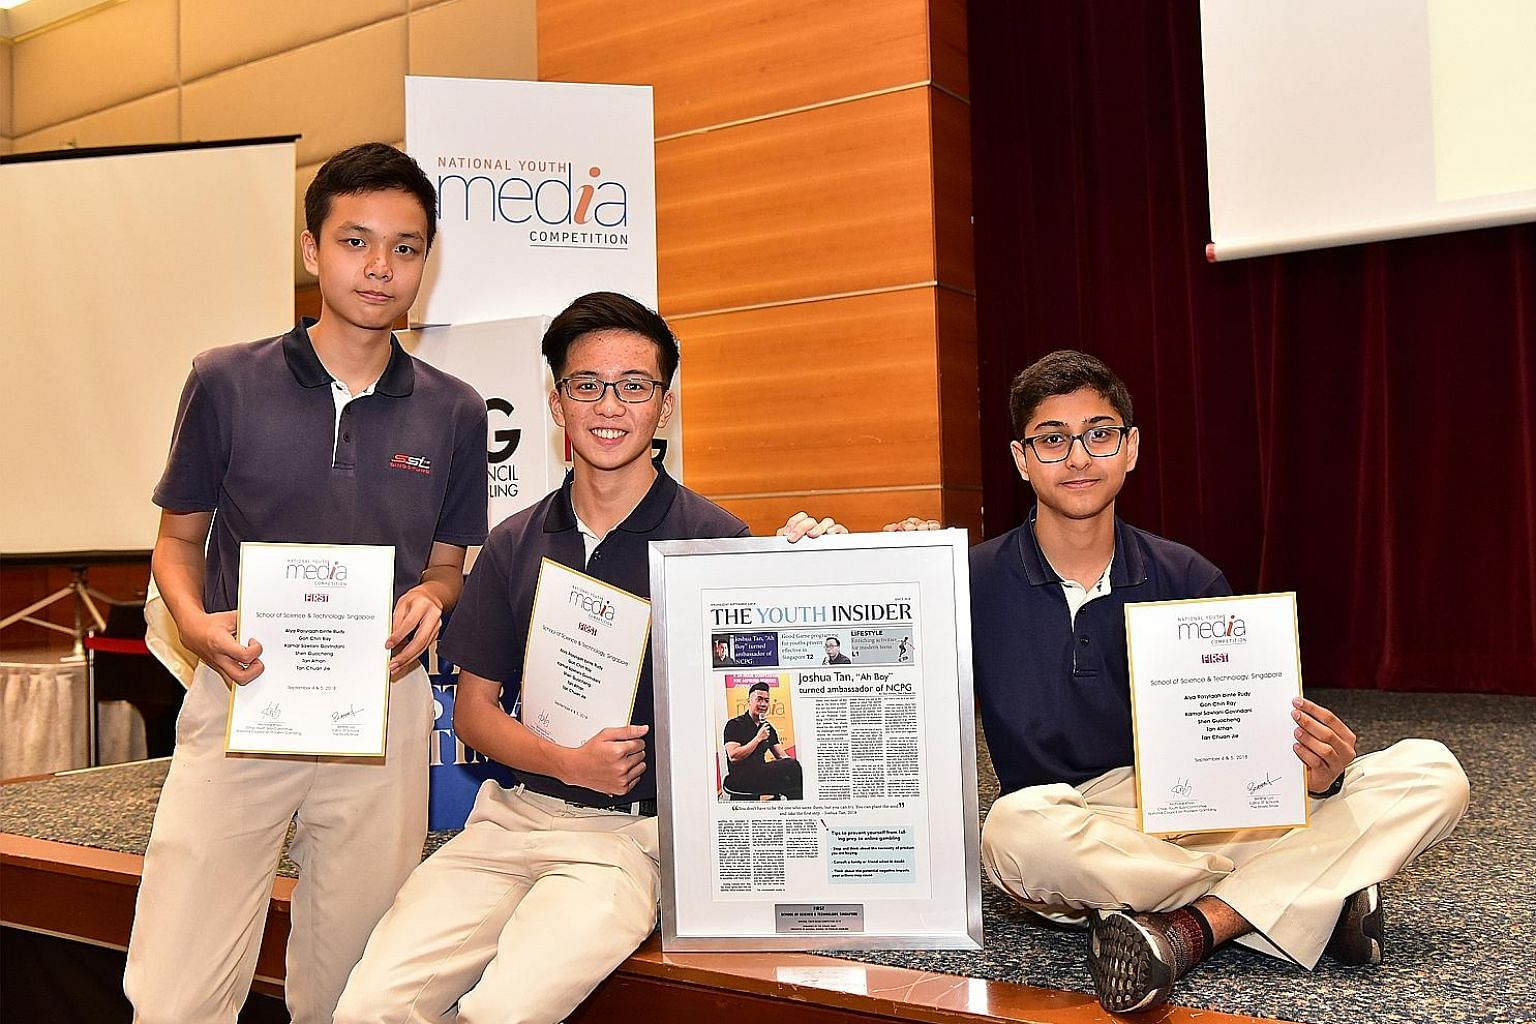 Some of the members of the School of Science and Technology, Singapore team that emerged champion in this year's National Youth Media Competition: (from left) Shen Guocheng, Tan Chuan Jie and Kamal Sawlani Govindani.